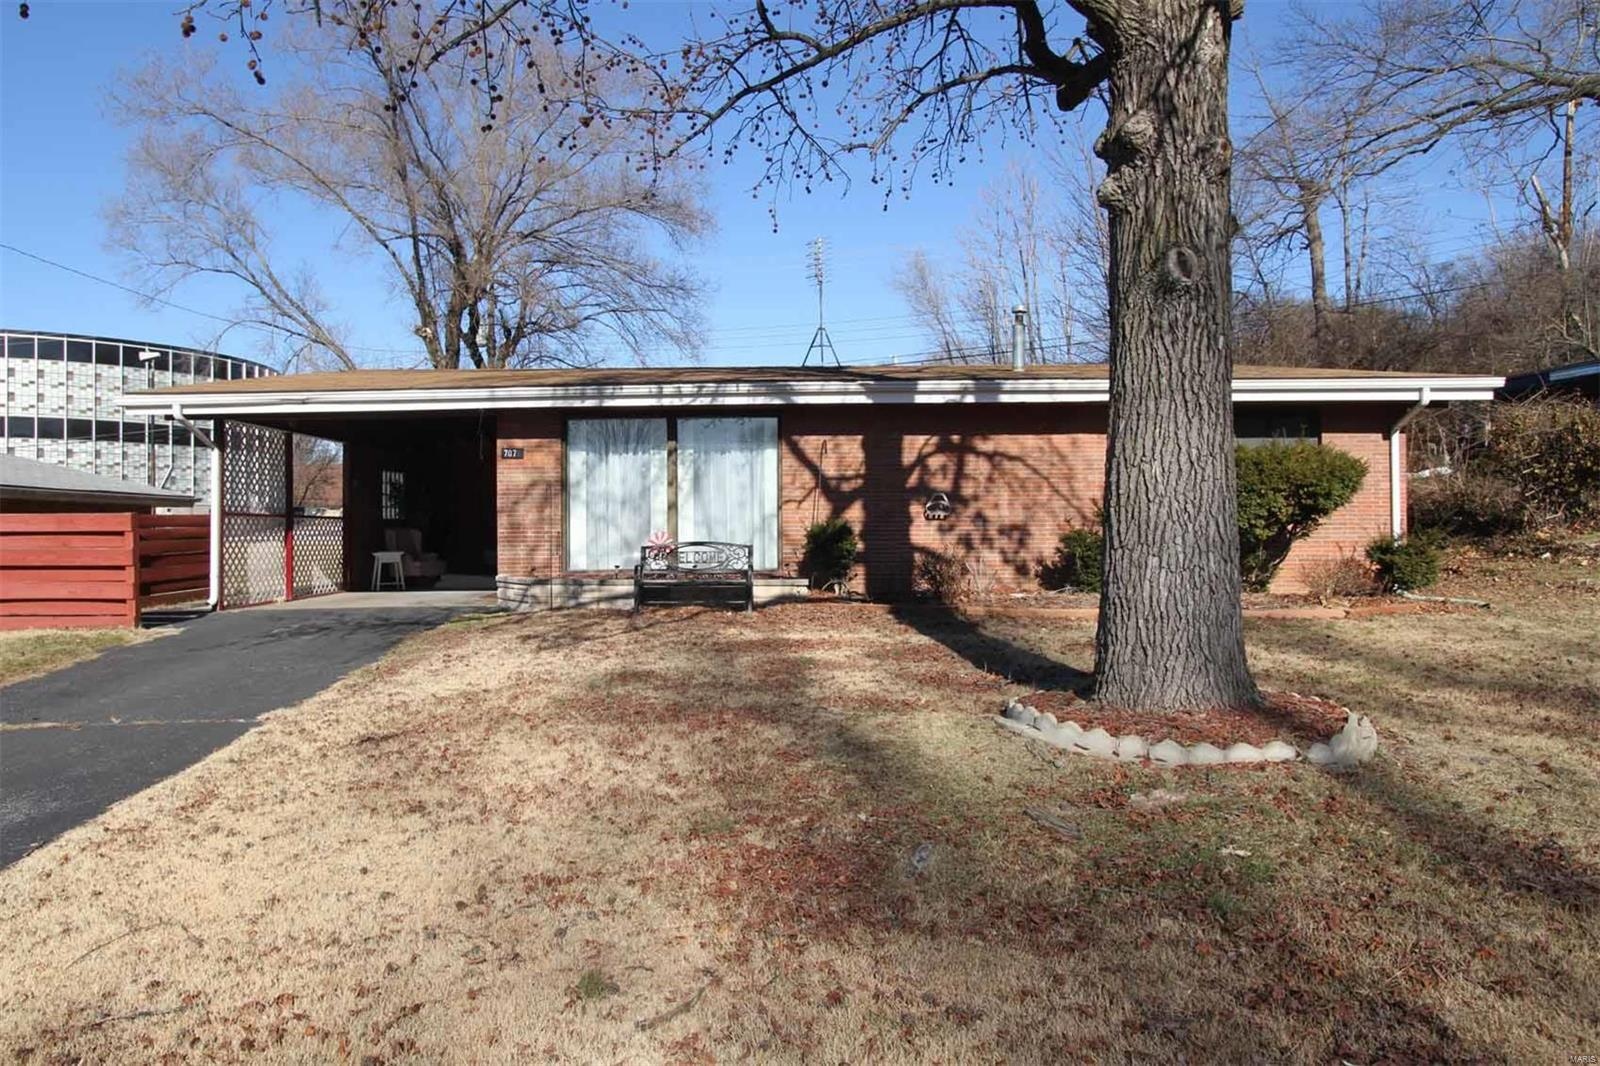 707 Ridgeway Property Photo - East Alton, IL real estate listing